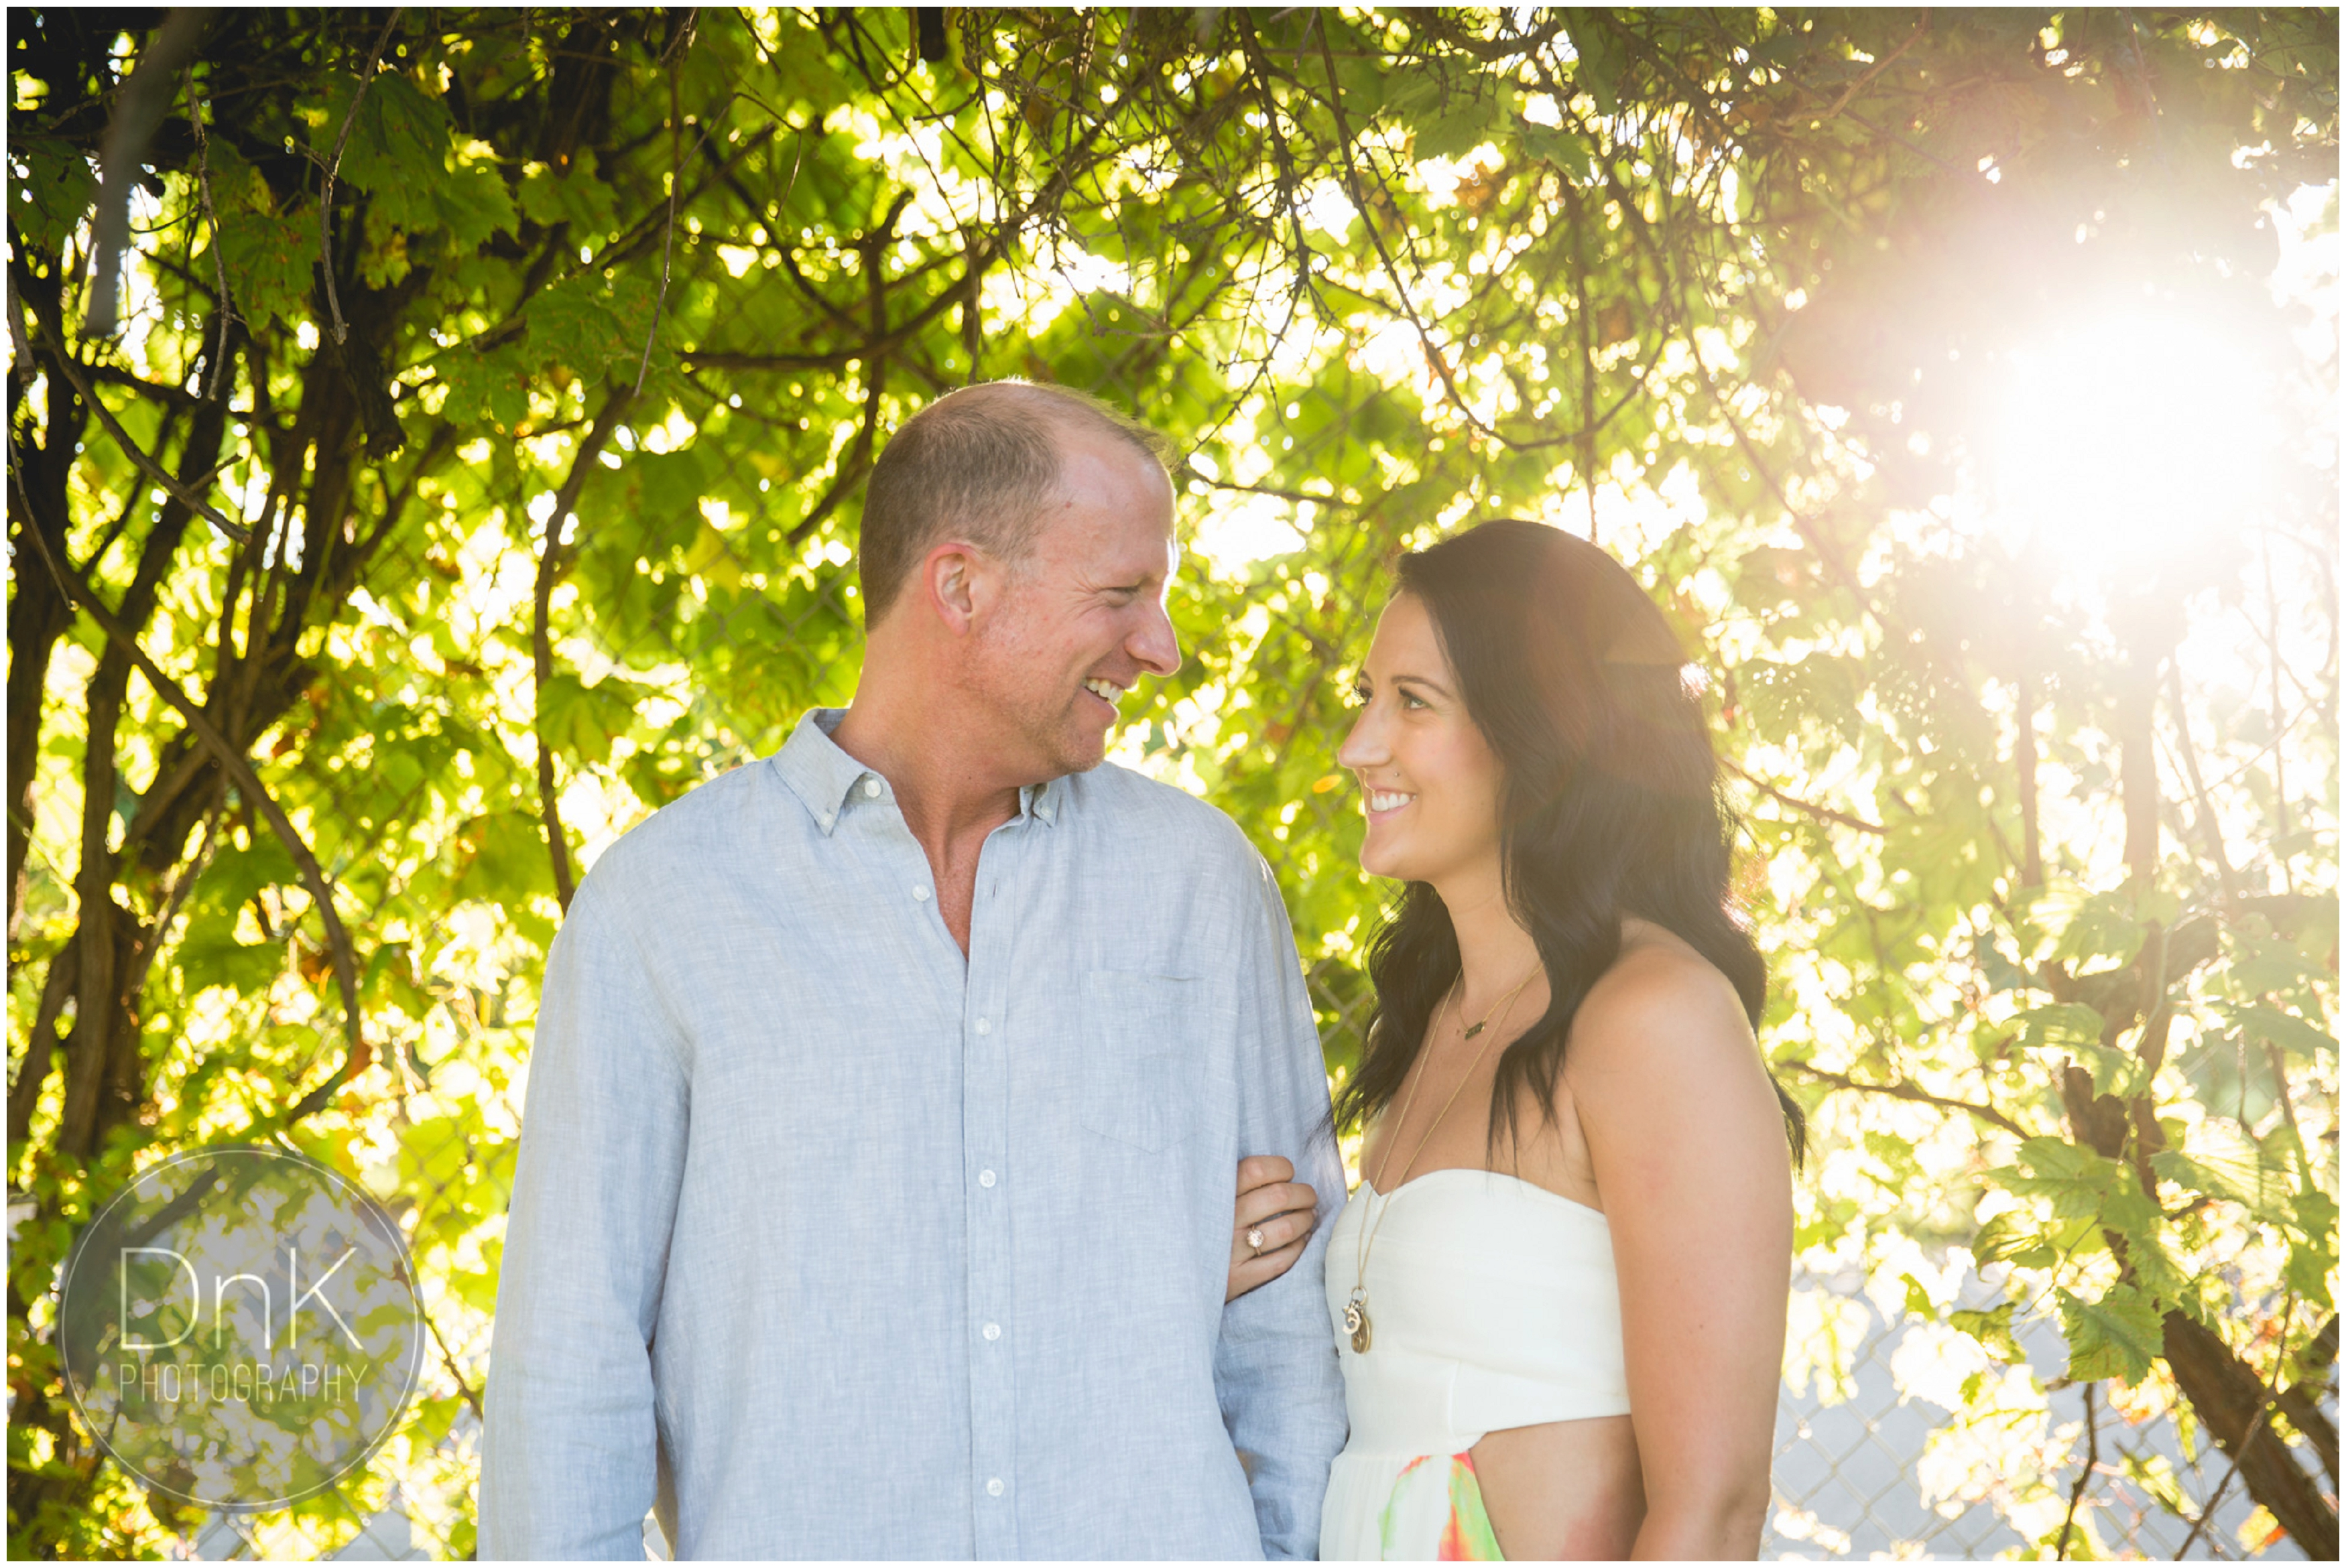 59- Engagement Pictures in a Vineyard